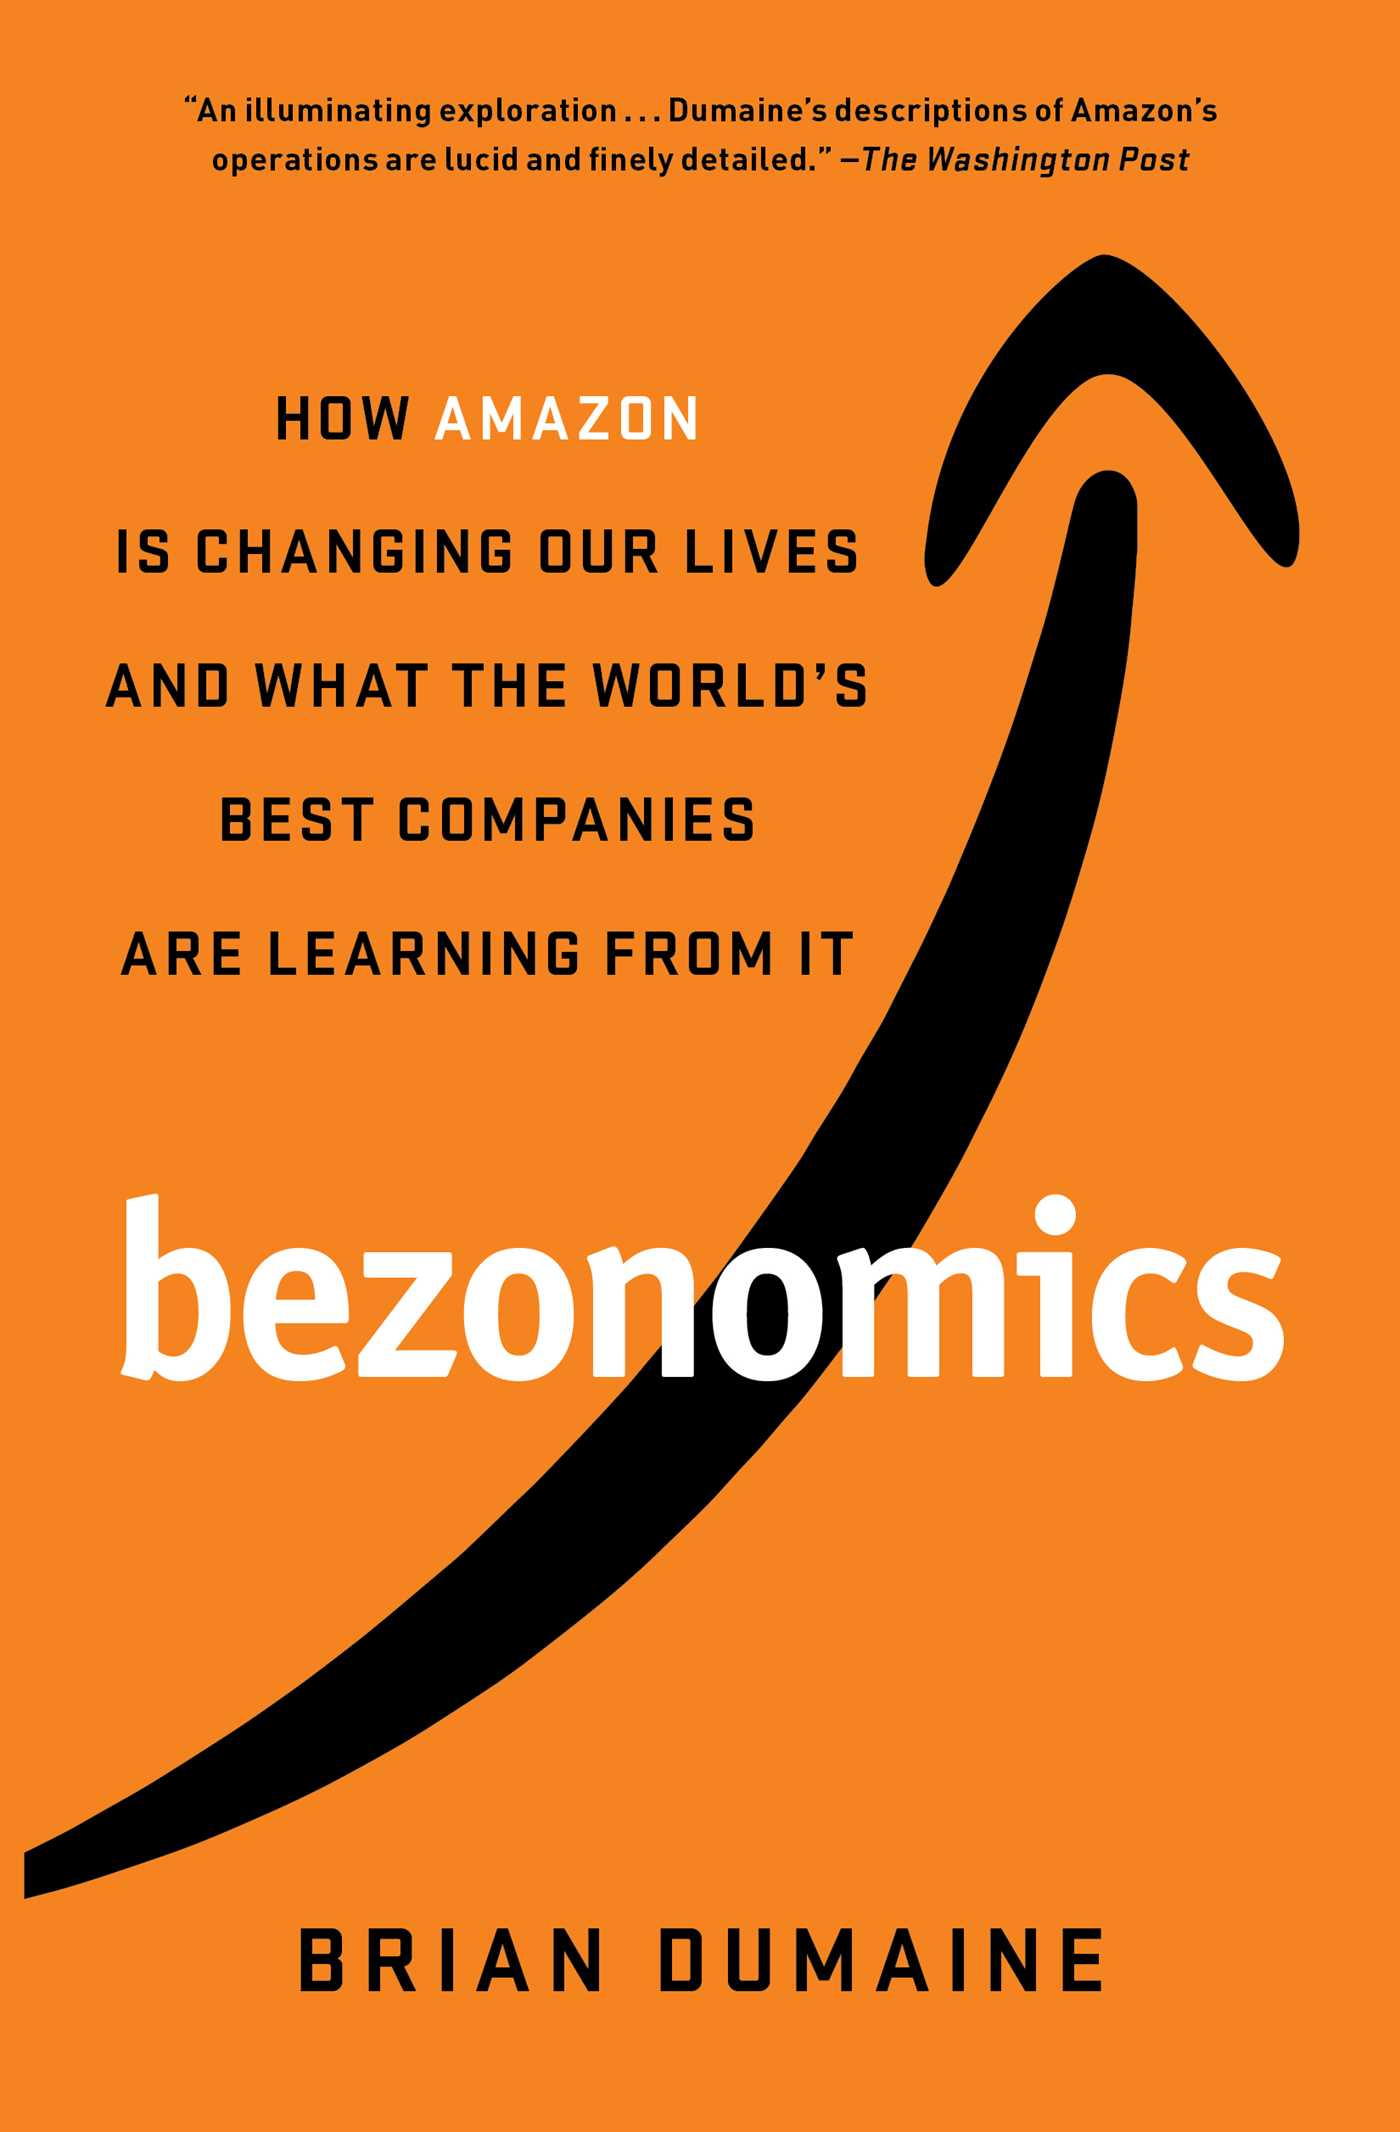 Bezonomics How Amazon Is Changing Our Lives and What the World's Best Companies Are Learning from It